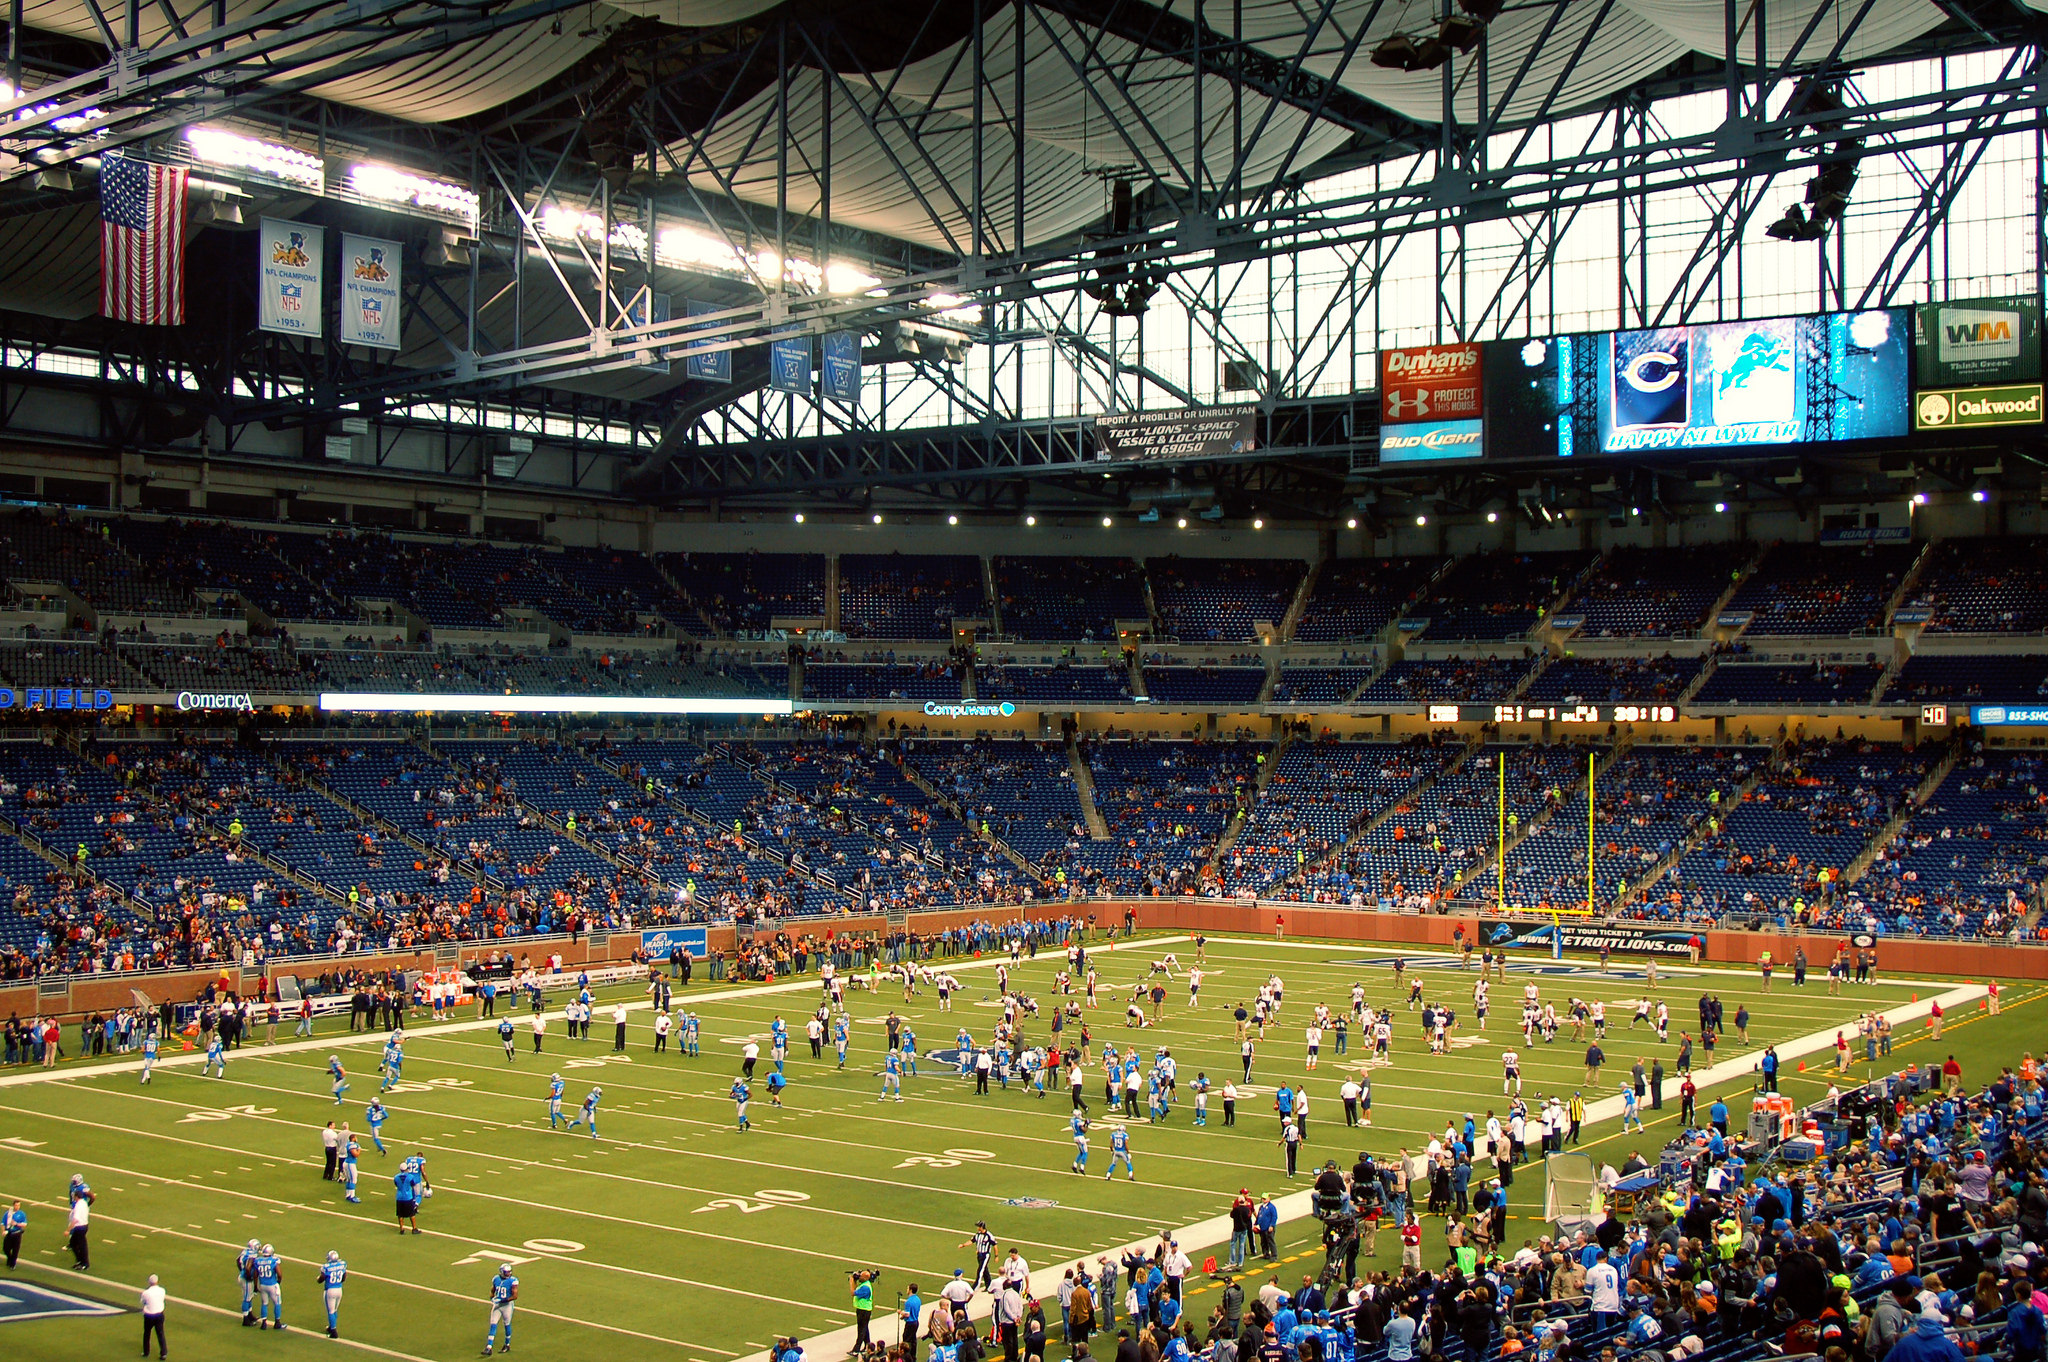 scoreboard at Ford Field Detroit Lions game